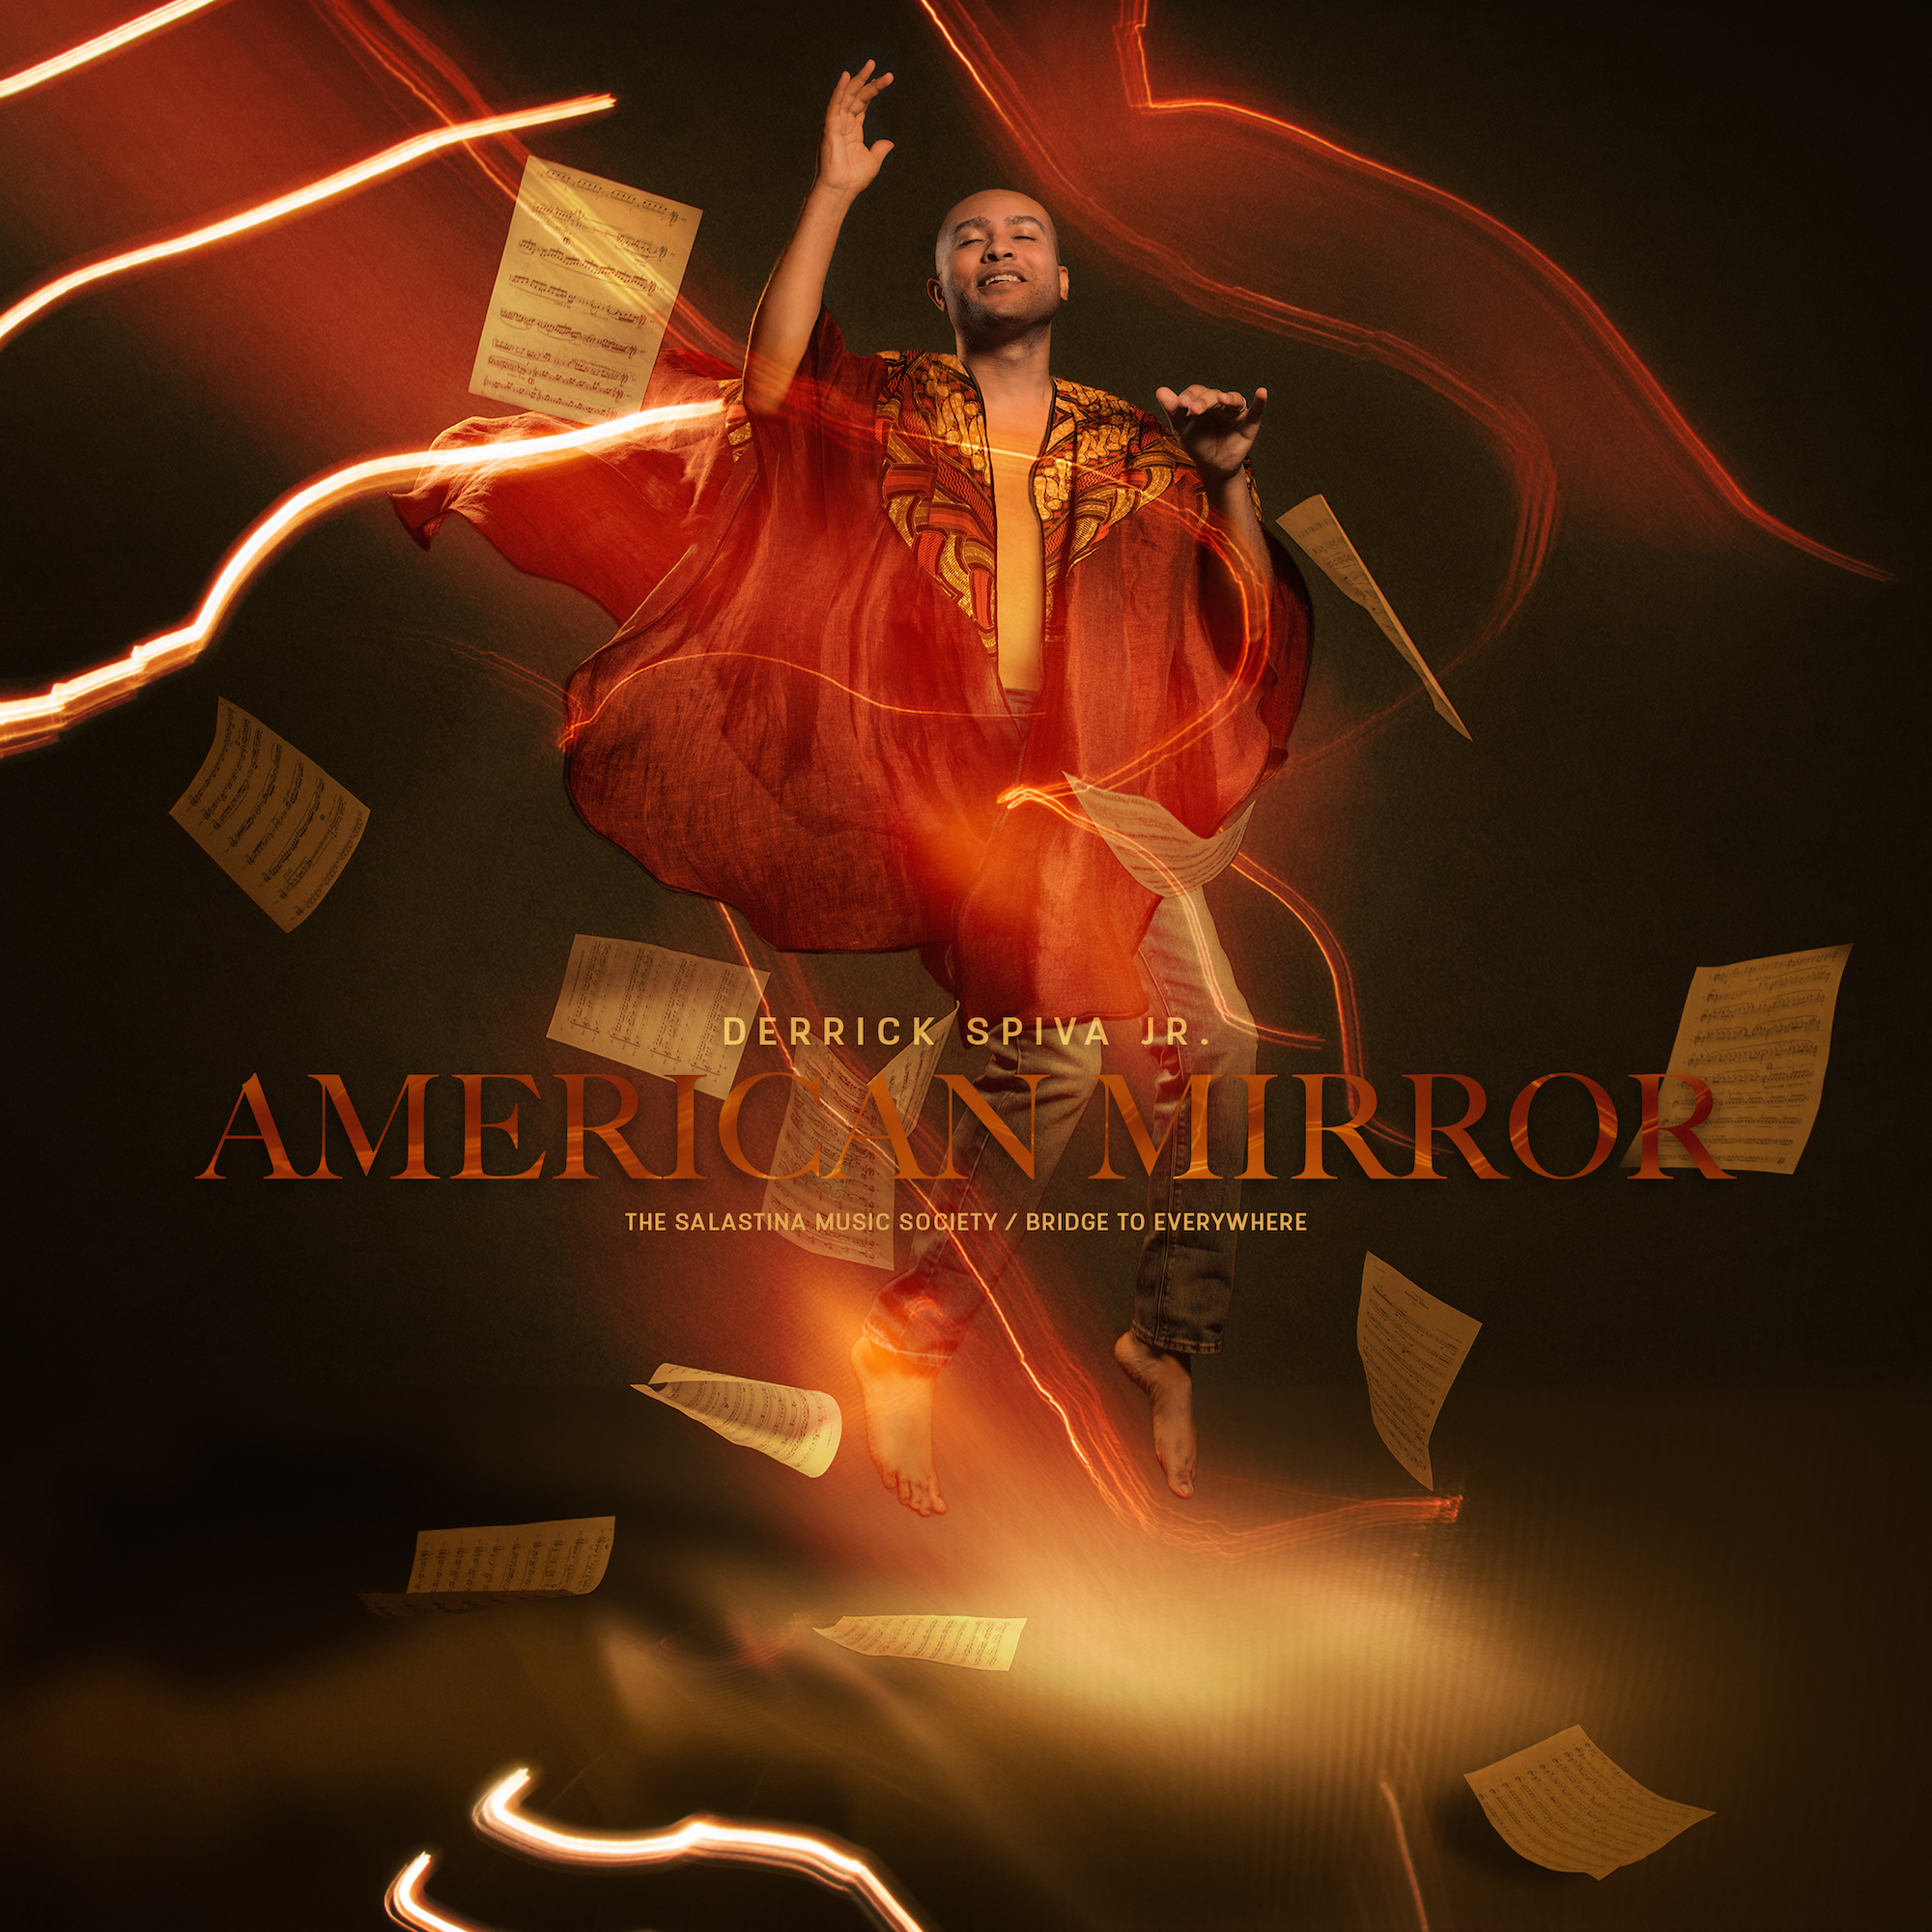 American Mirror Album Out Now!